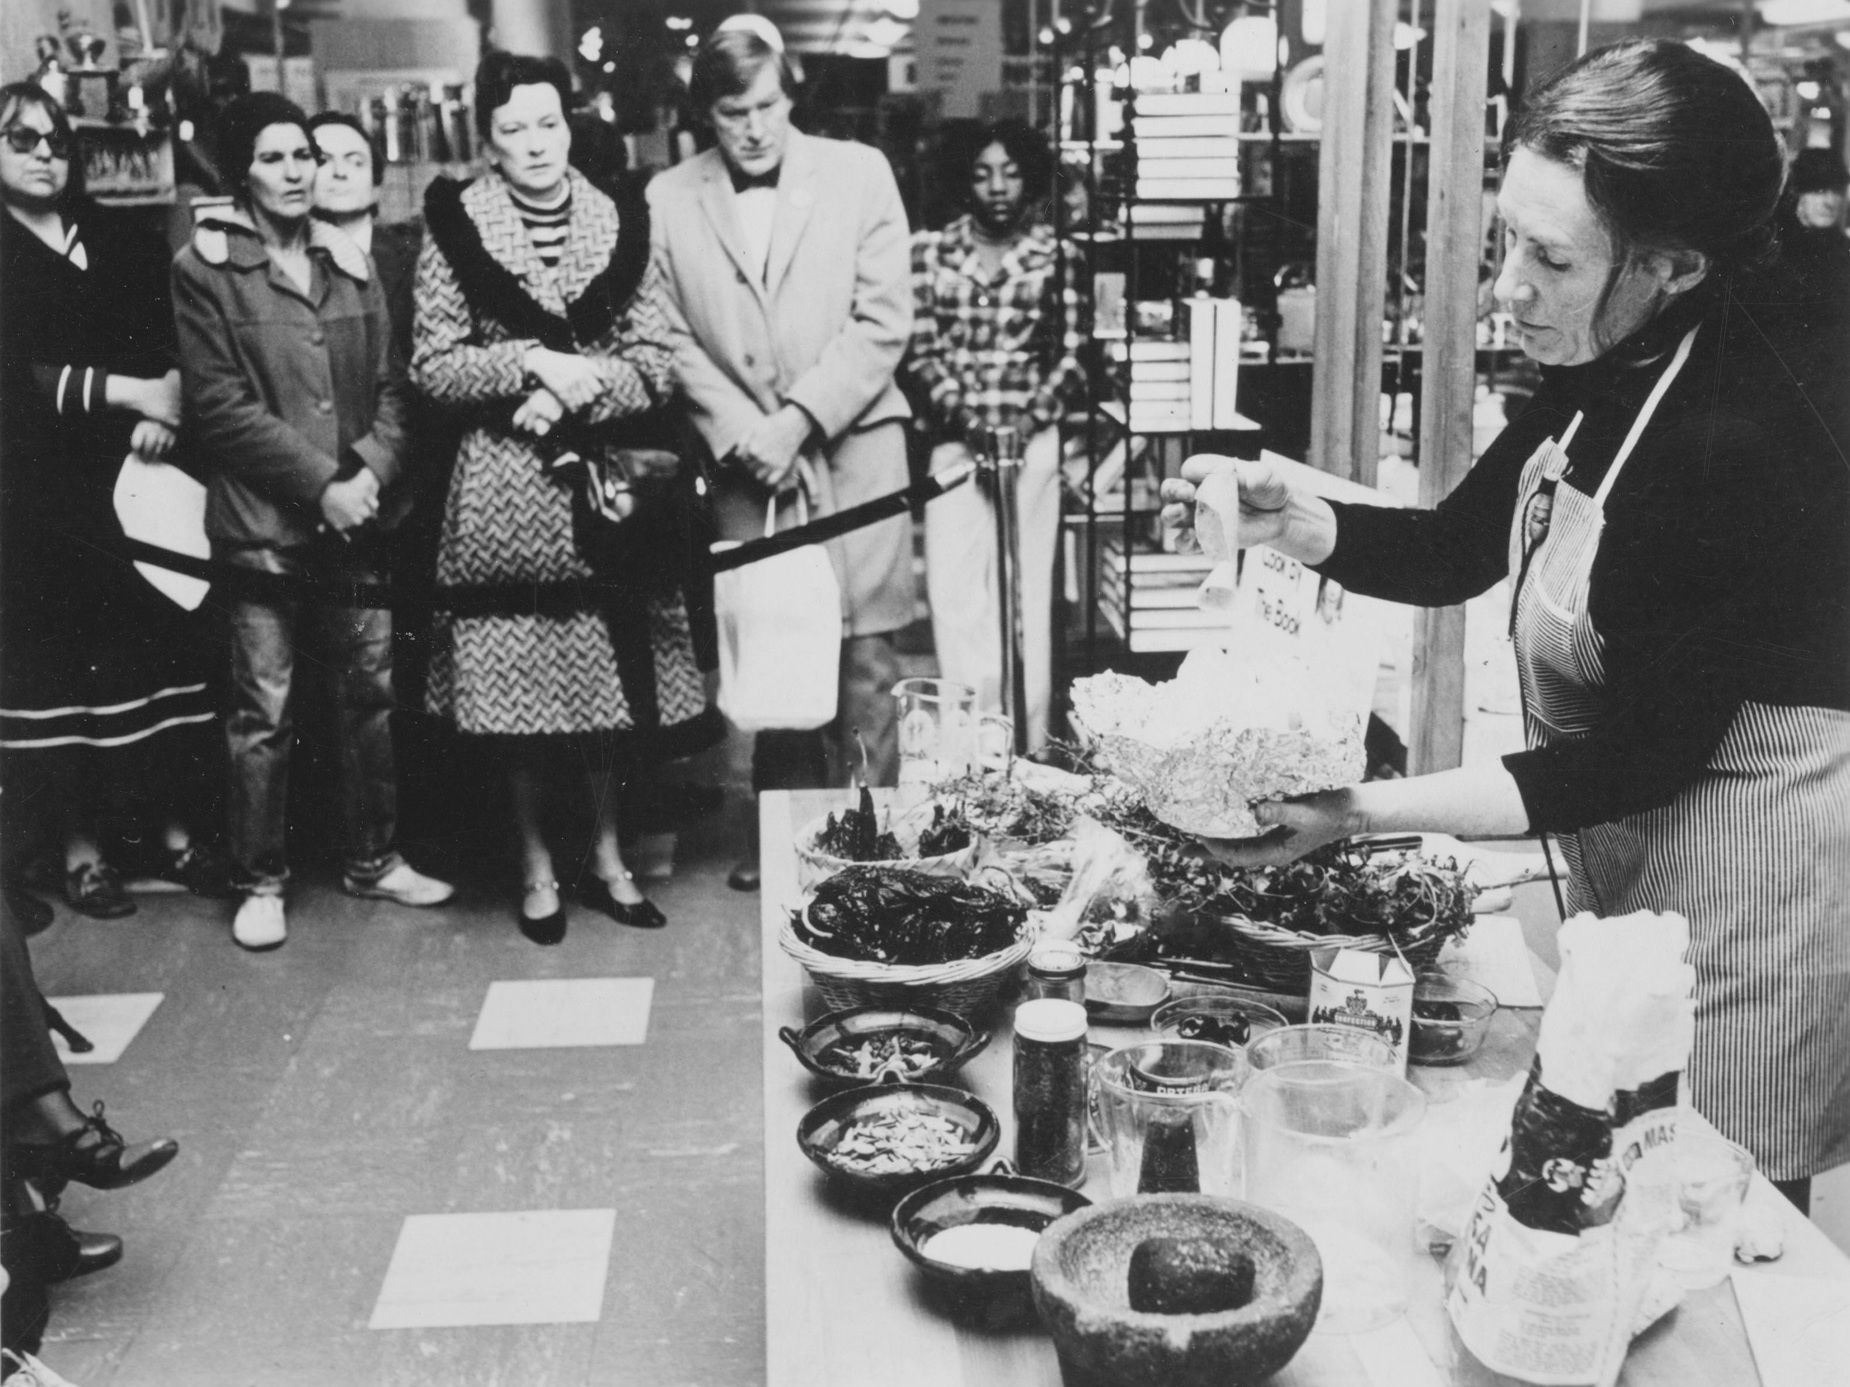 Kennedy gives a cooking demonstration at Bloomingdale's in New York City in 1972.